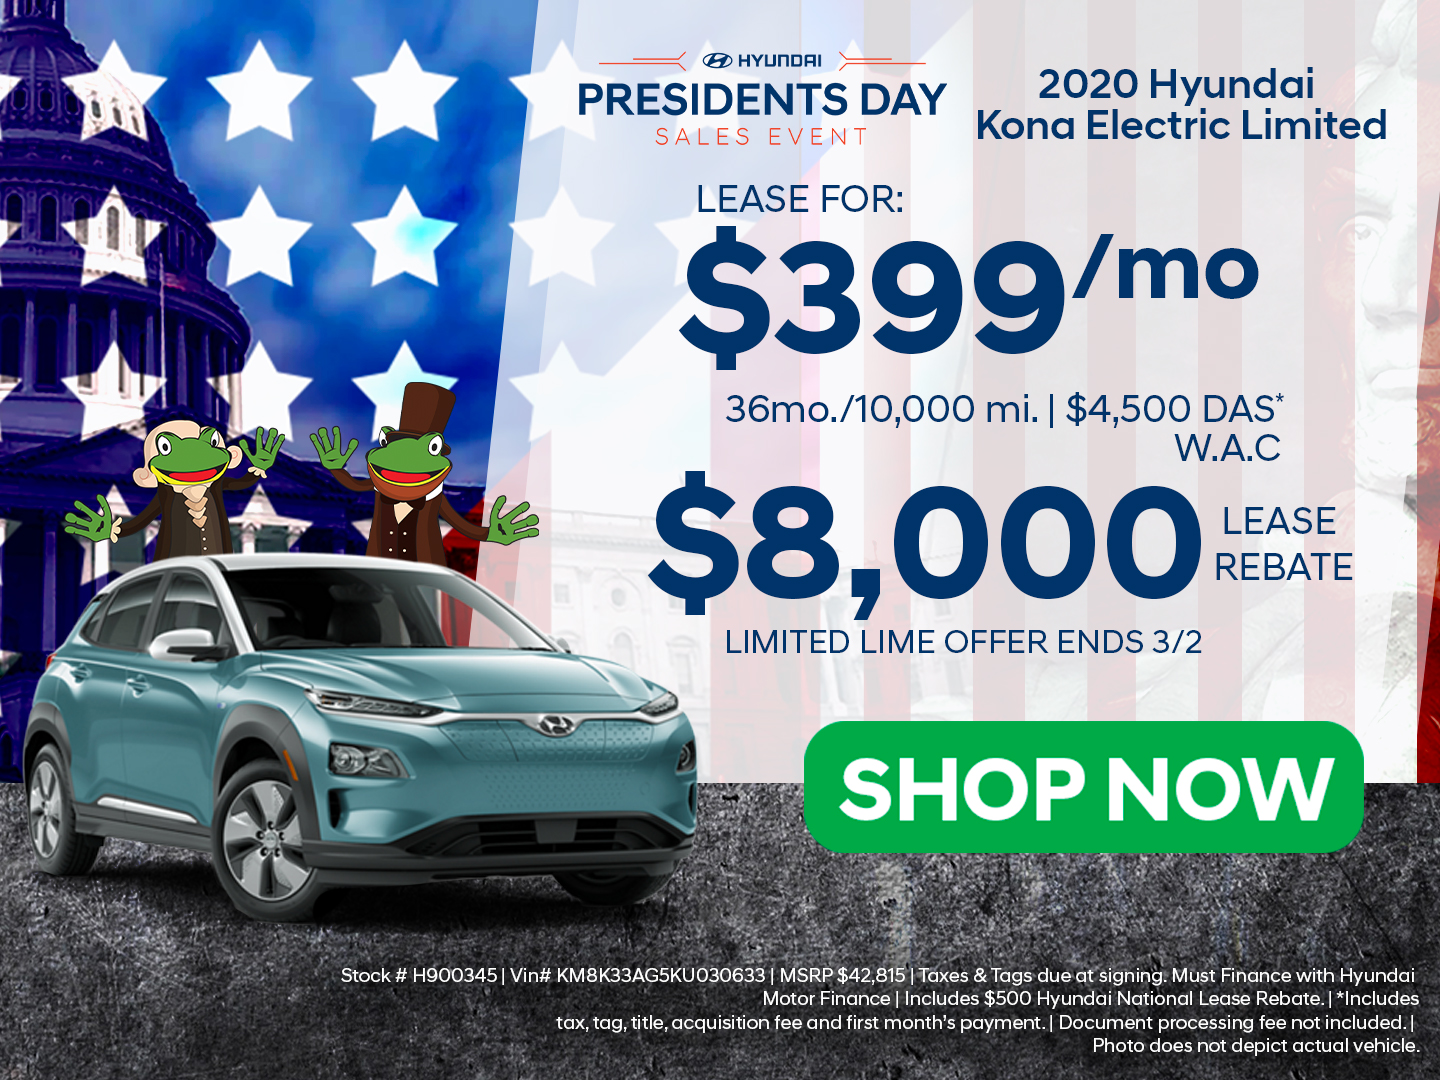 Preston Hyundai Presidents' Day Event Kona Electric Offer